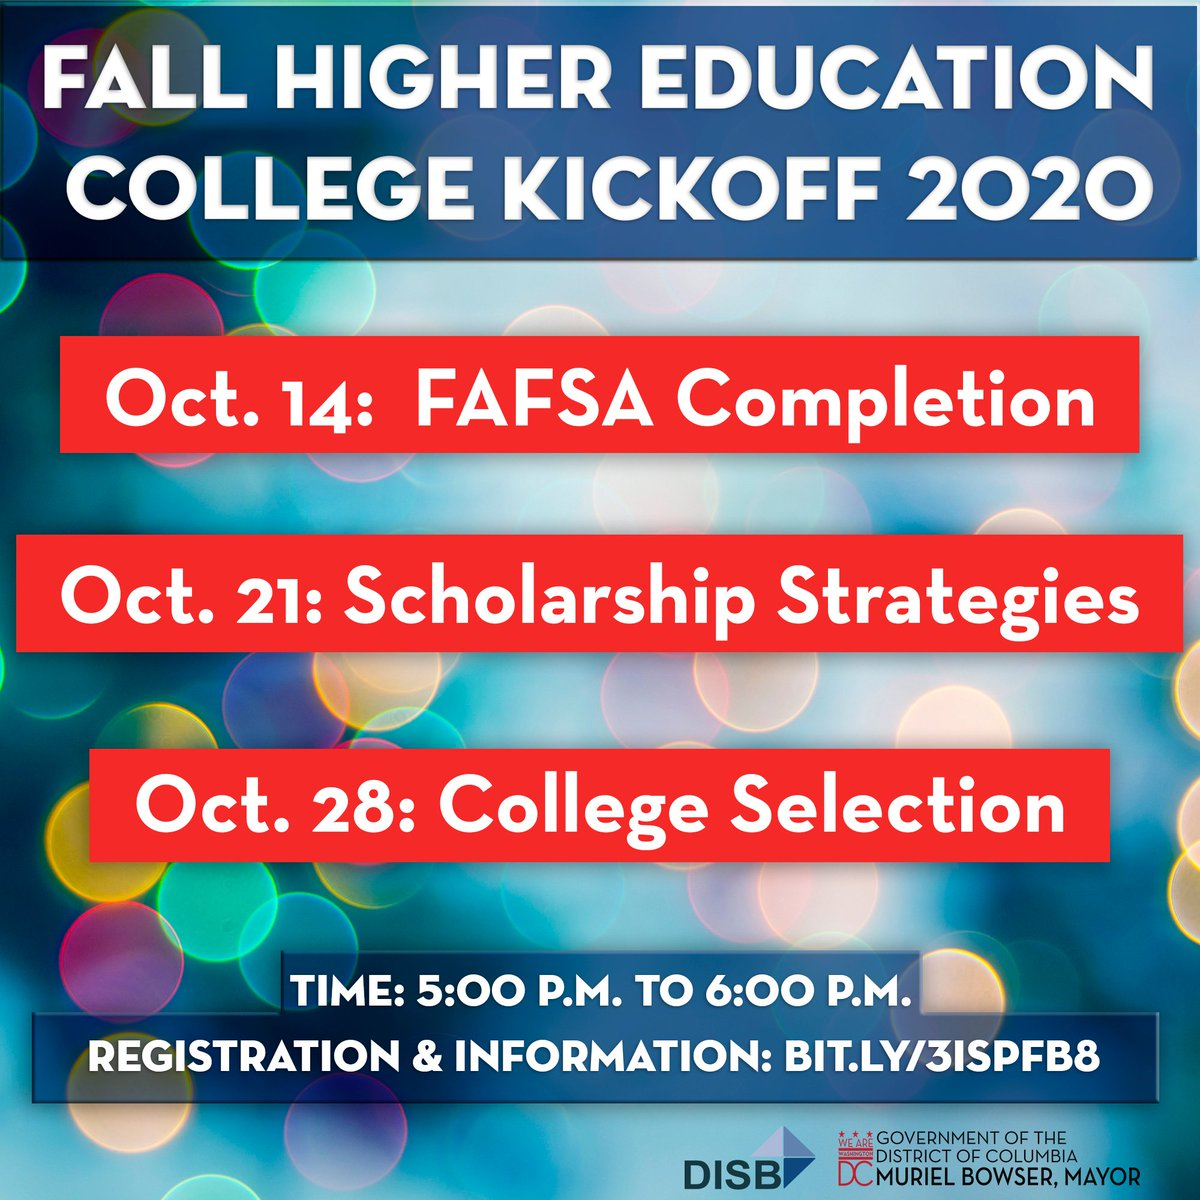 This fall make distance learning a little easier. Attend our higher education webinars and get ready for a better 2021! Oct. 14 - FAFSA Completion Oct. 21 - Scholarship Strategies Oct. 28 - College Selection 👉 all sessions: 5-6 p.m. 👉 registration: https://t.co/6jZFxxQQNb https://t.co/8tVZYts0Zw